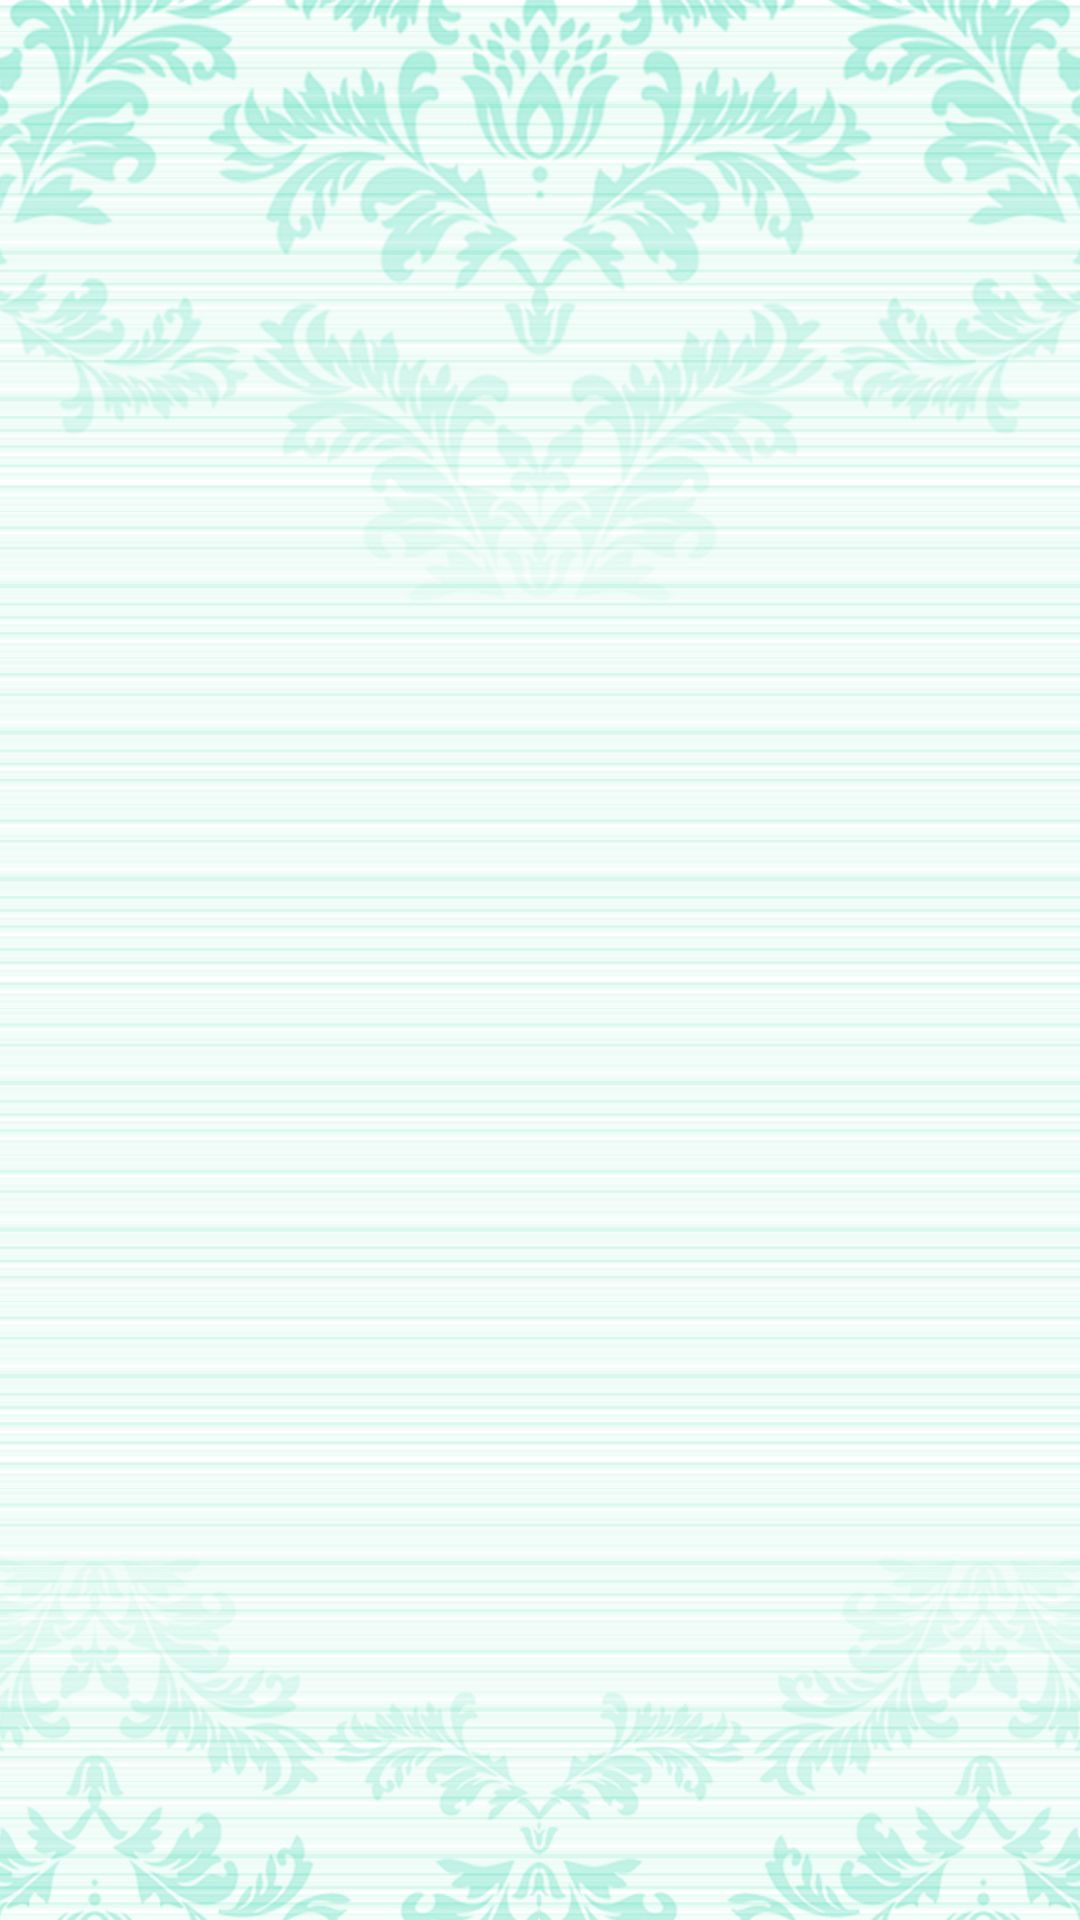 Pastel Mint Green Ombre Damask Frame Iphone Phone Lock